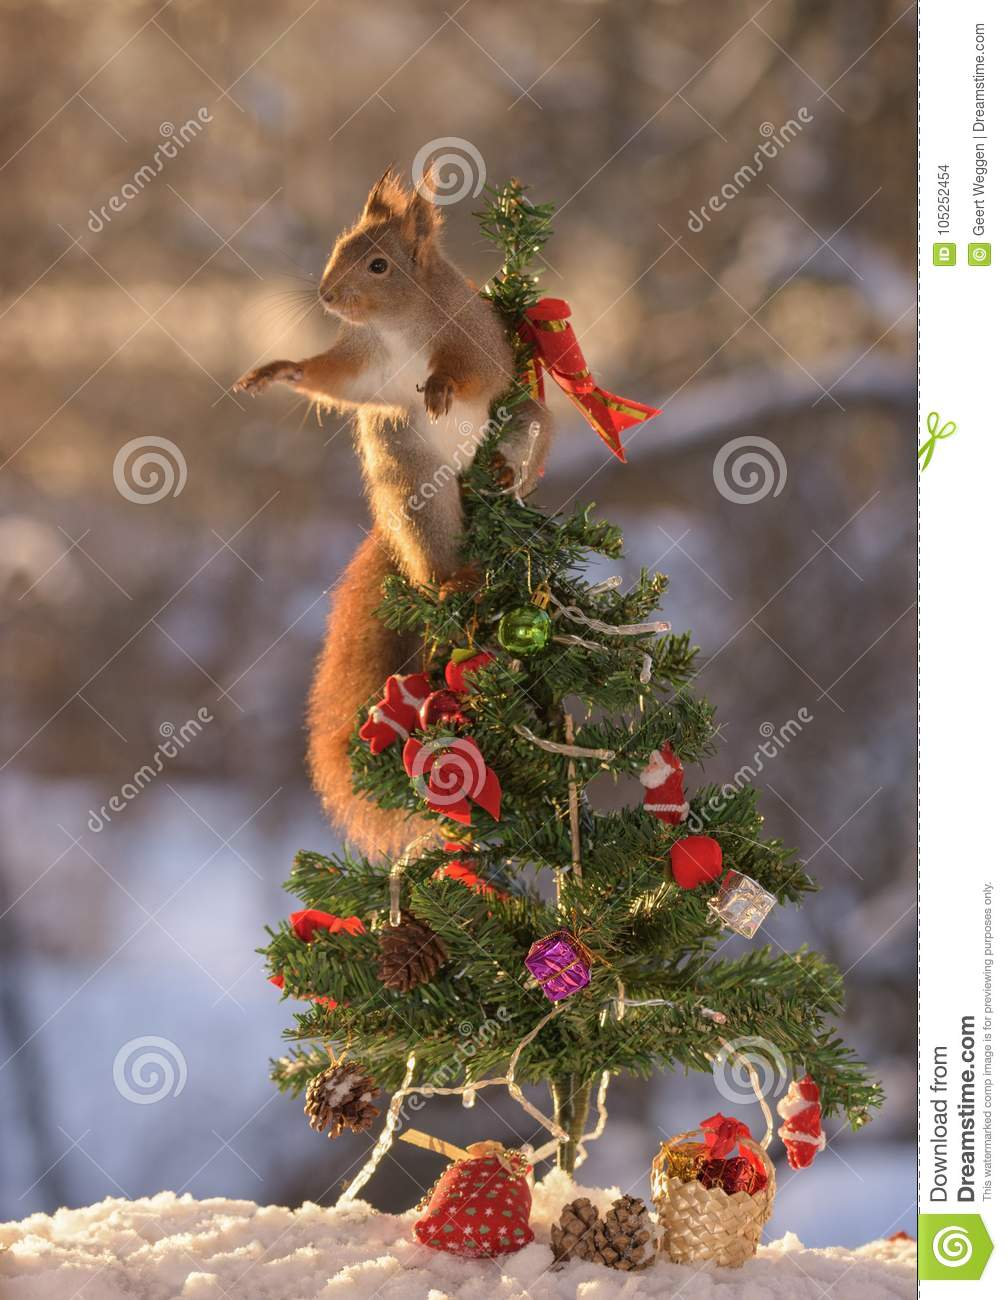 Squirrel In Christmas Tree Reaching Out Stock Photo